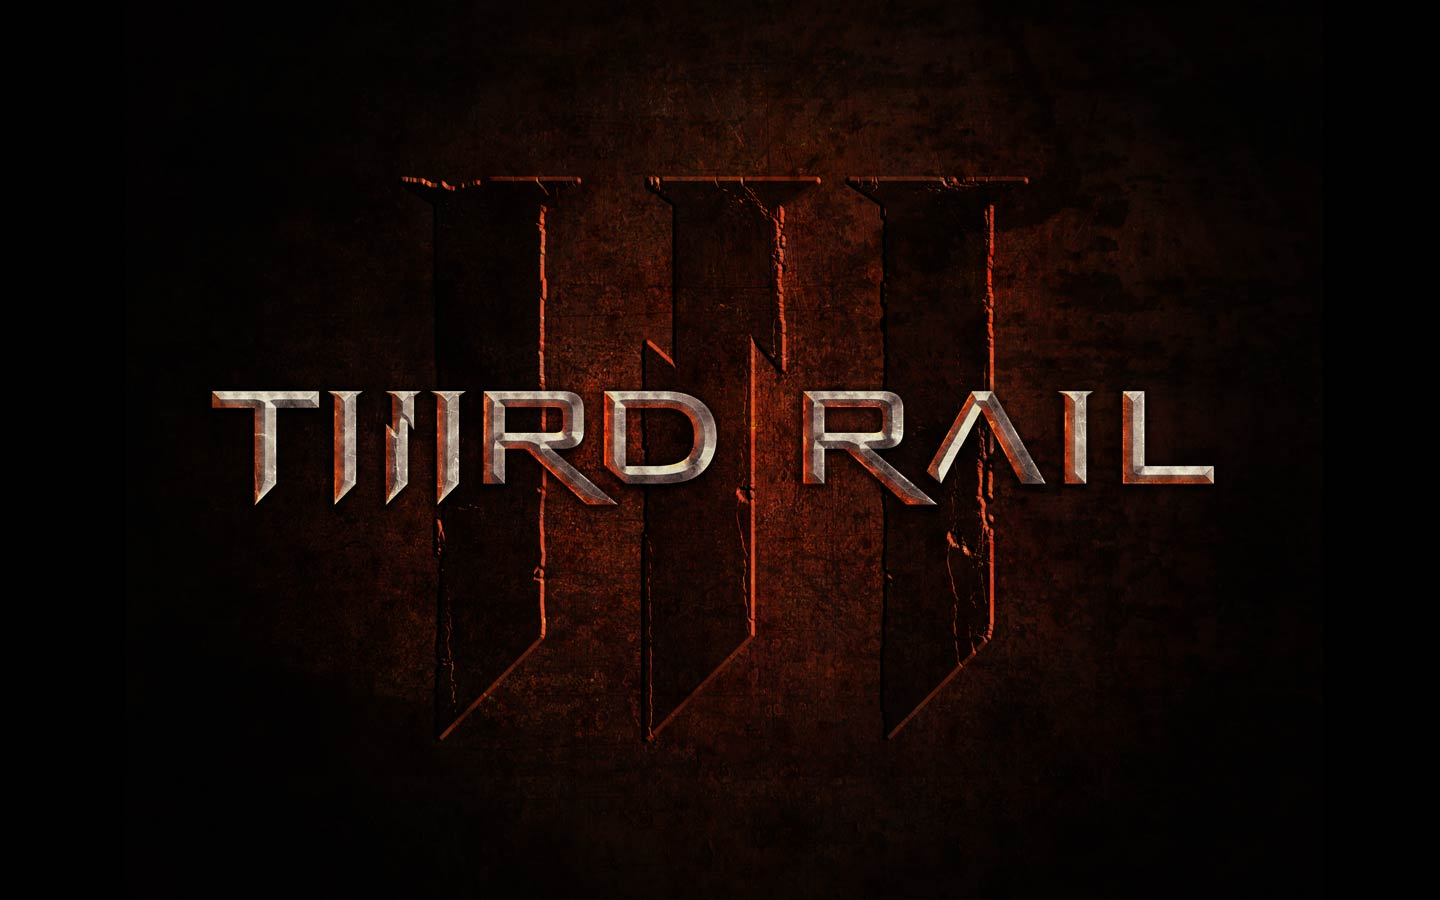 Third Rail - Laurent Lemoigne - Donanubis - Don Anubis - Graphic Design - Logo Design - Dos Brain - California - US - Art - Music - Electronic - Cinema - Movie - Trailer - Movie trailer - Poster - Biomechanic - Biomechanik - Biomechanical - Man - Machine - Factory - Industrial - Dark - NIN - Prometheus -  Alternative - Underground - Geneva - Switzerland